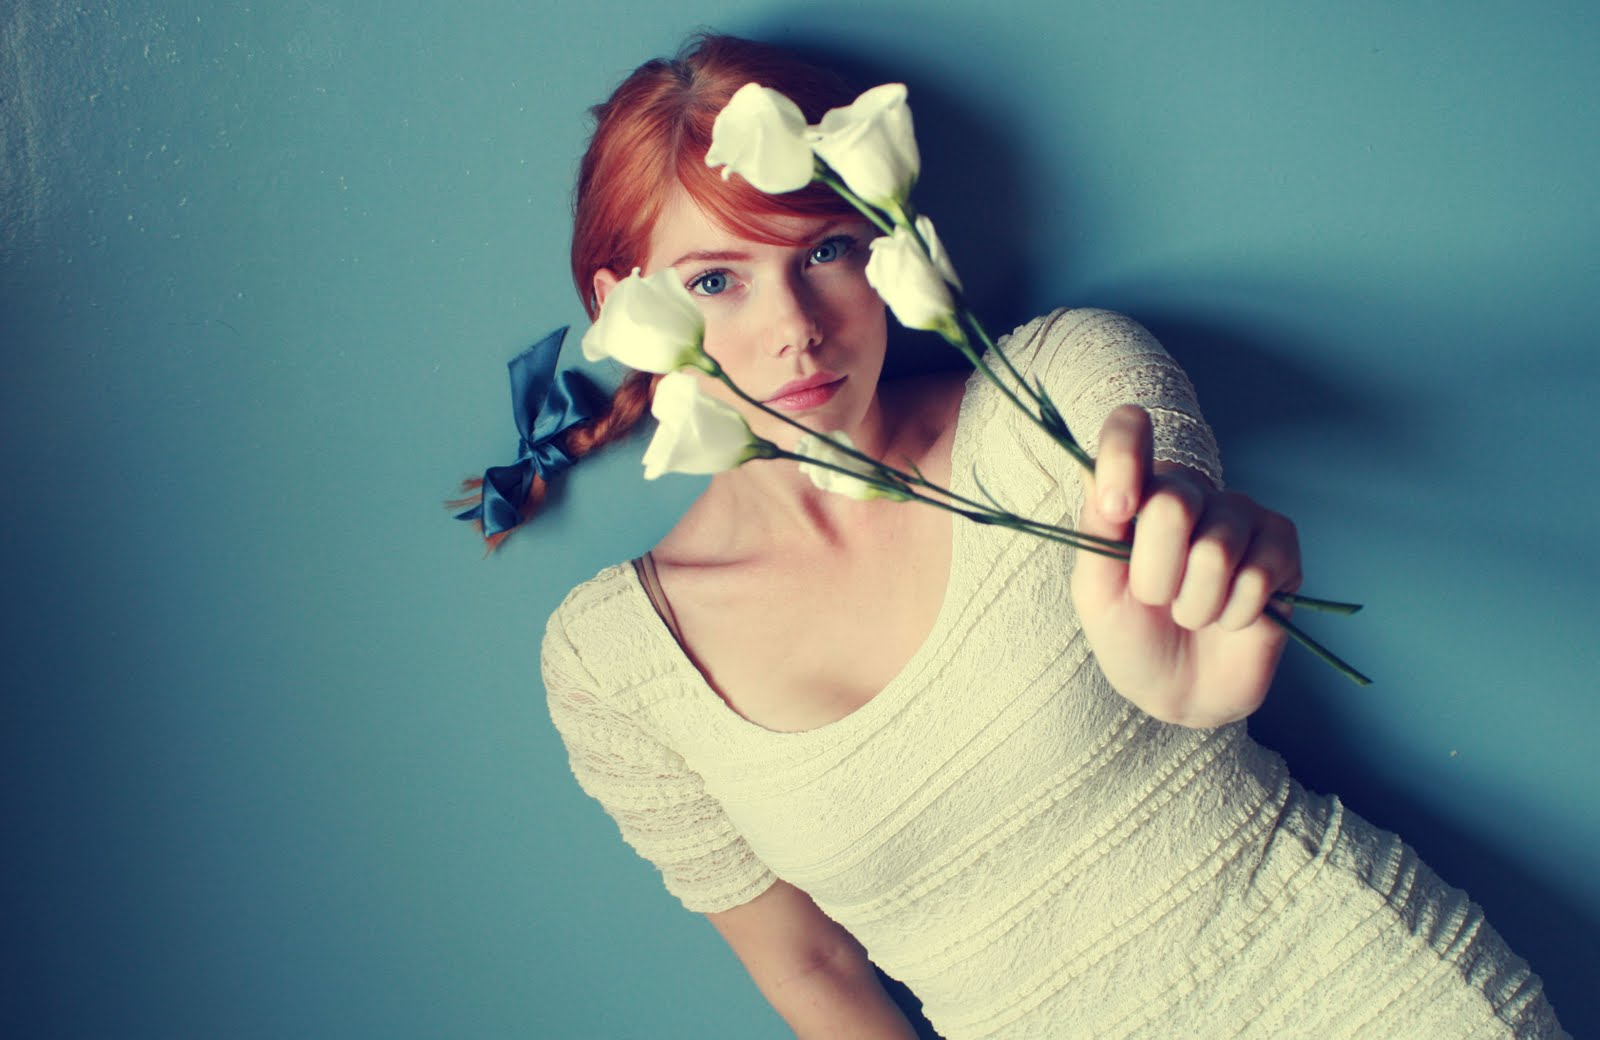 woman Flowers redheads lying